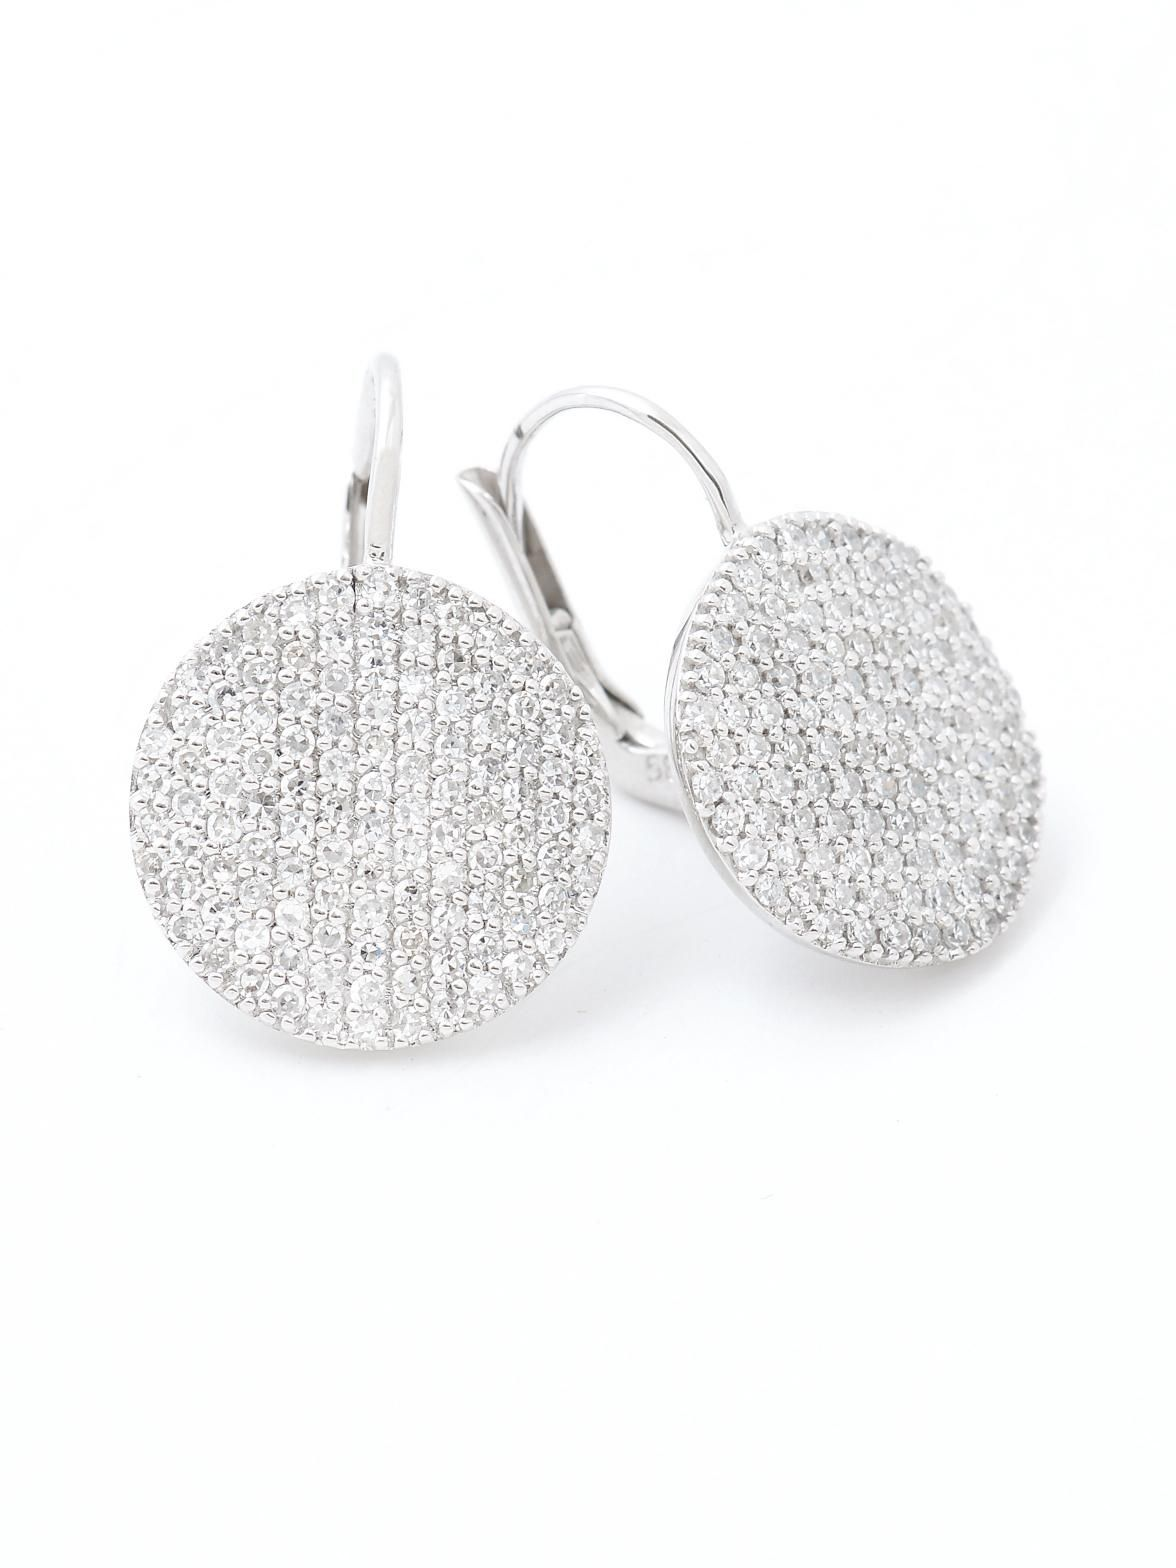 Phillips Frankel 14k White Gold Pave Diamond Disc Earrings At London Jewelers